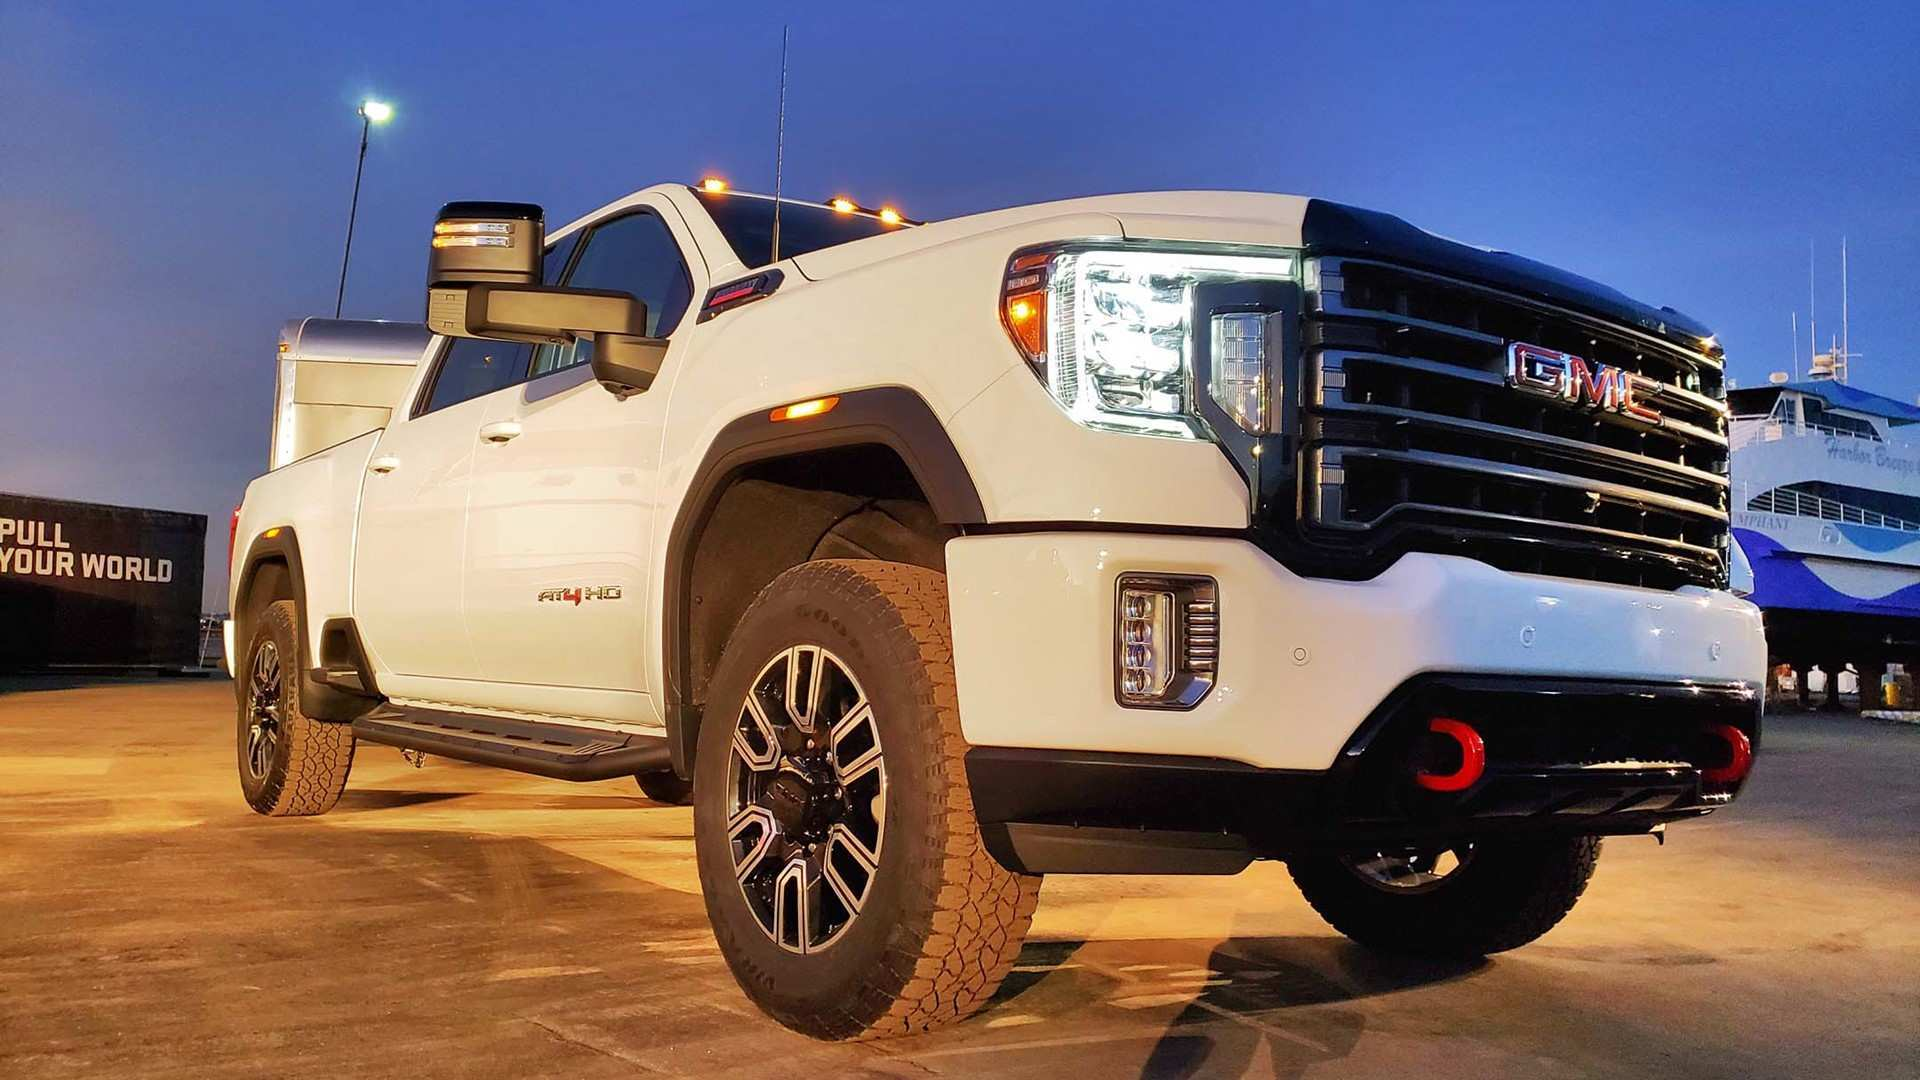 46 Gallery of 2020 Gmc 2500 New Body Style Photos for 2020 Gmc 2500 New Body Style